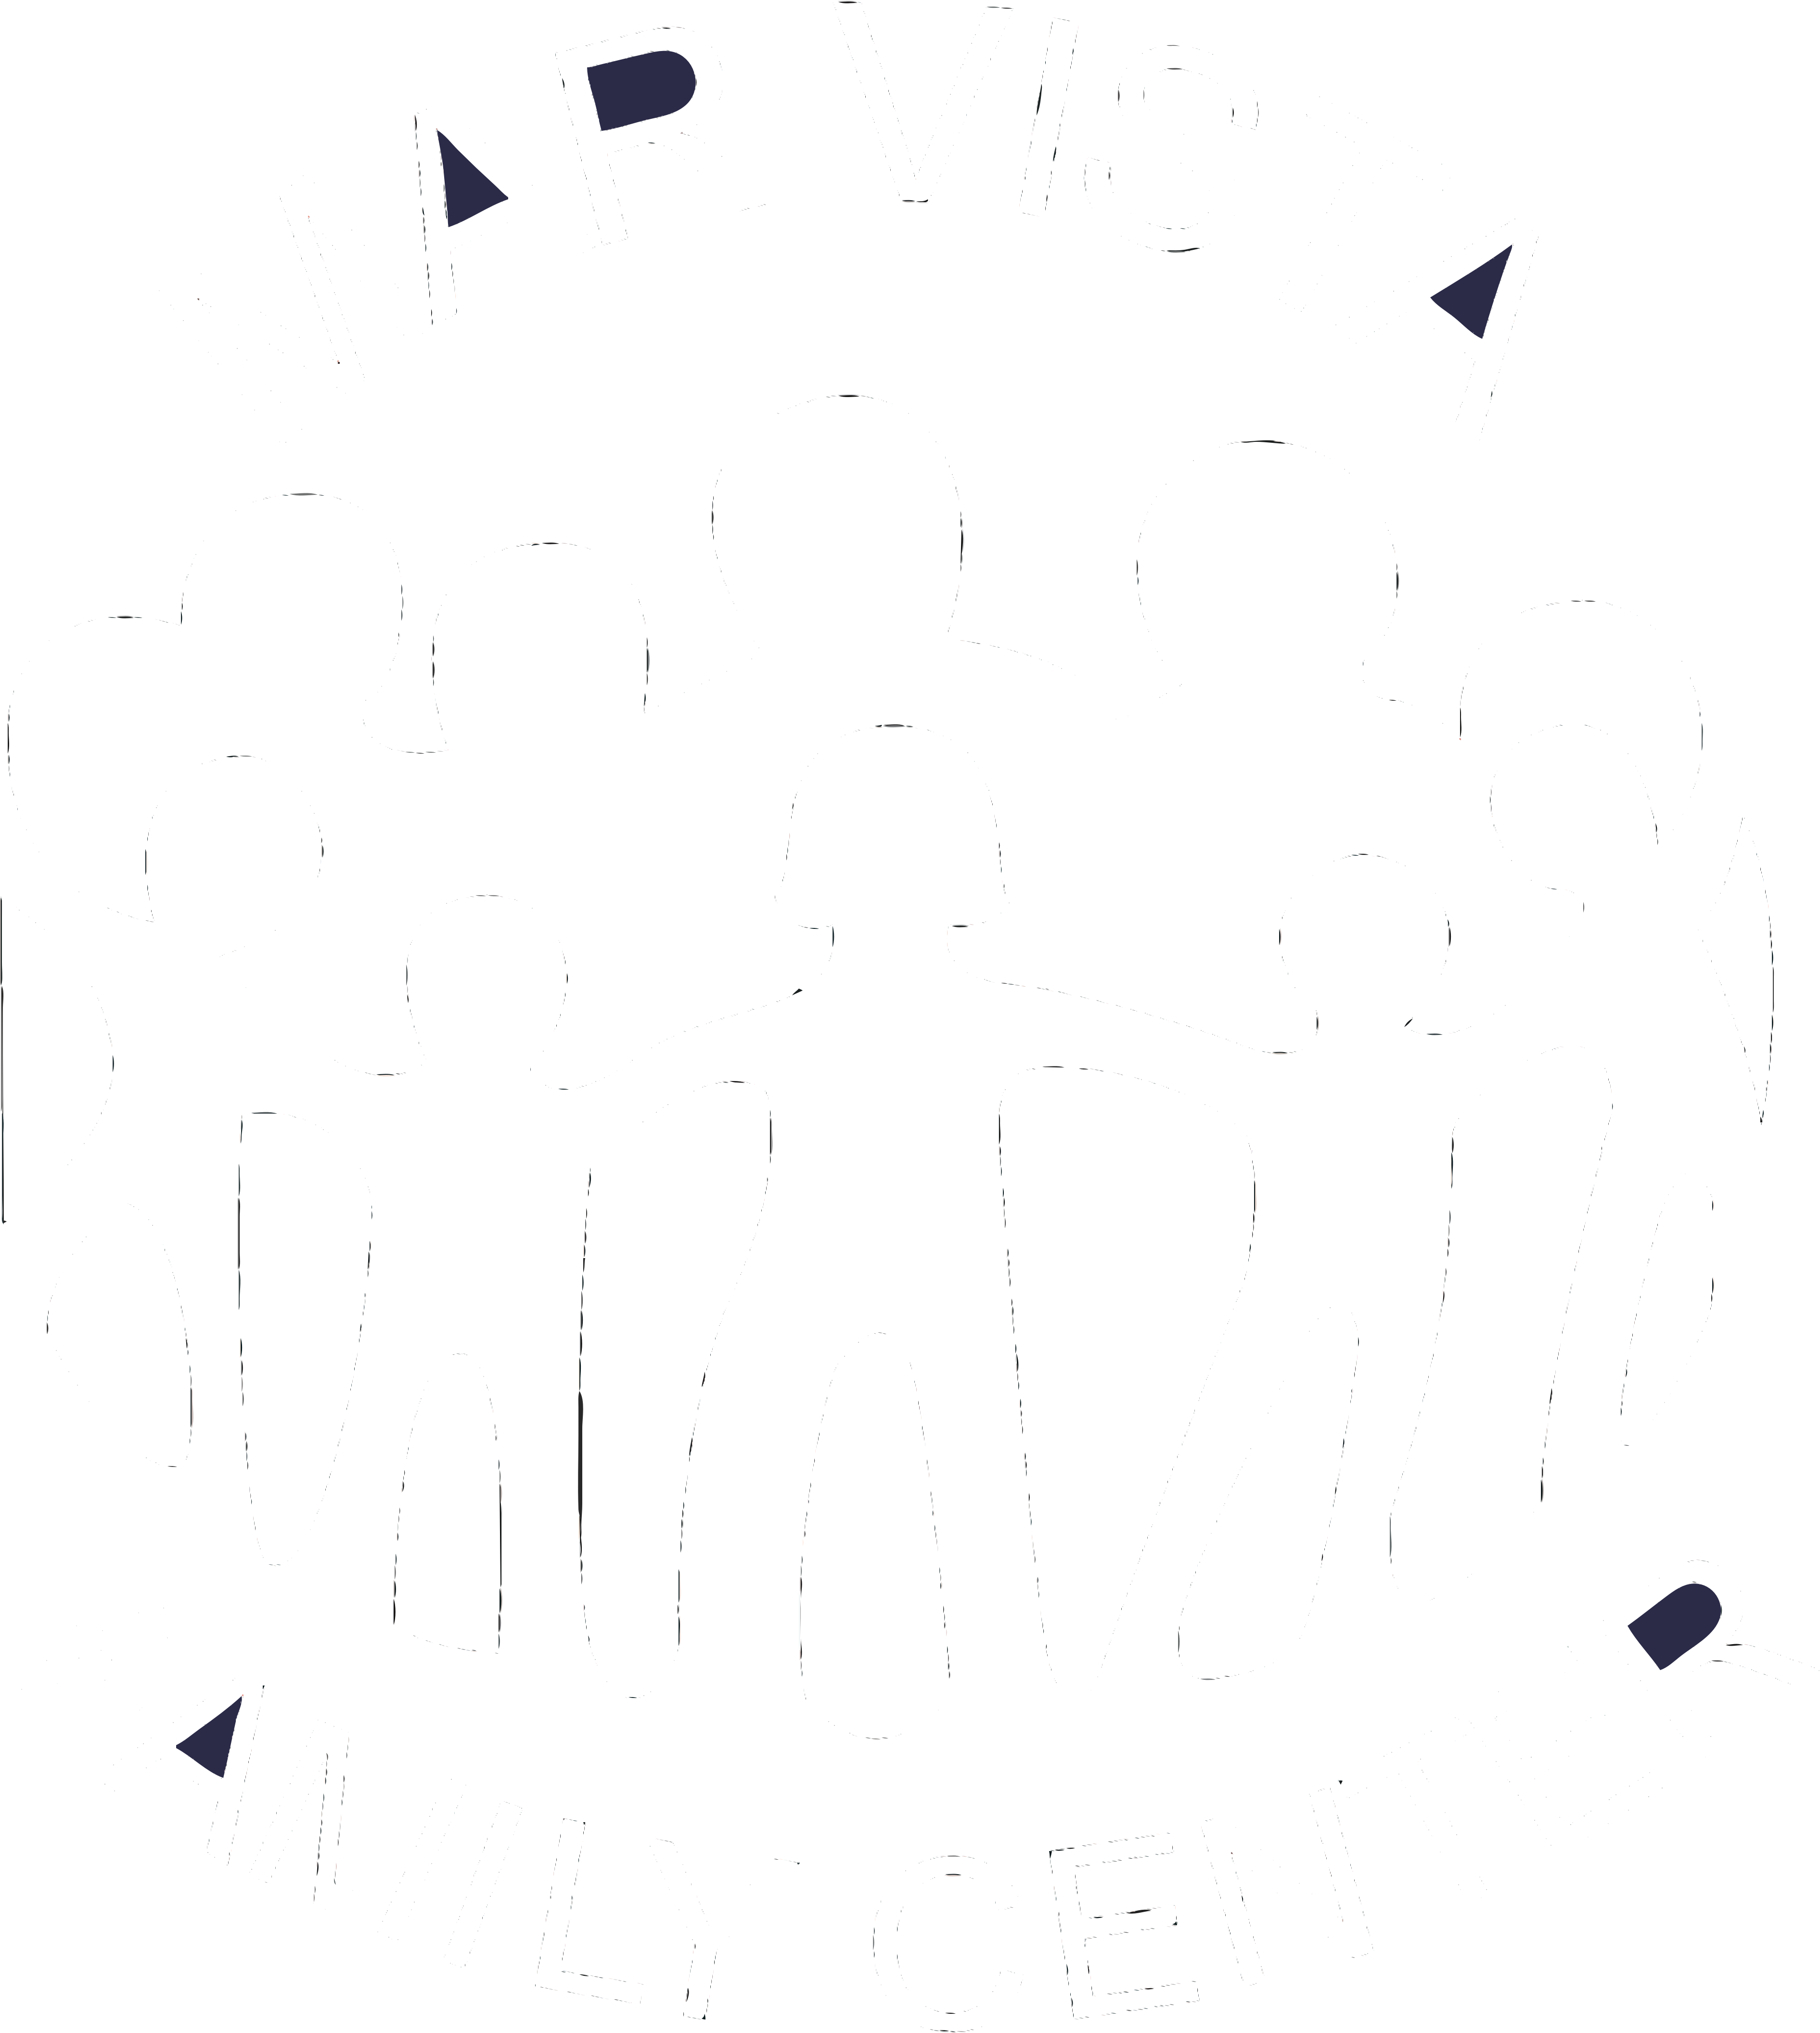 Mar Vista Family Center